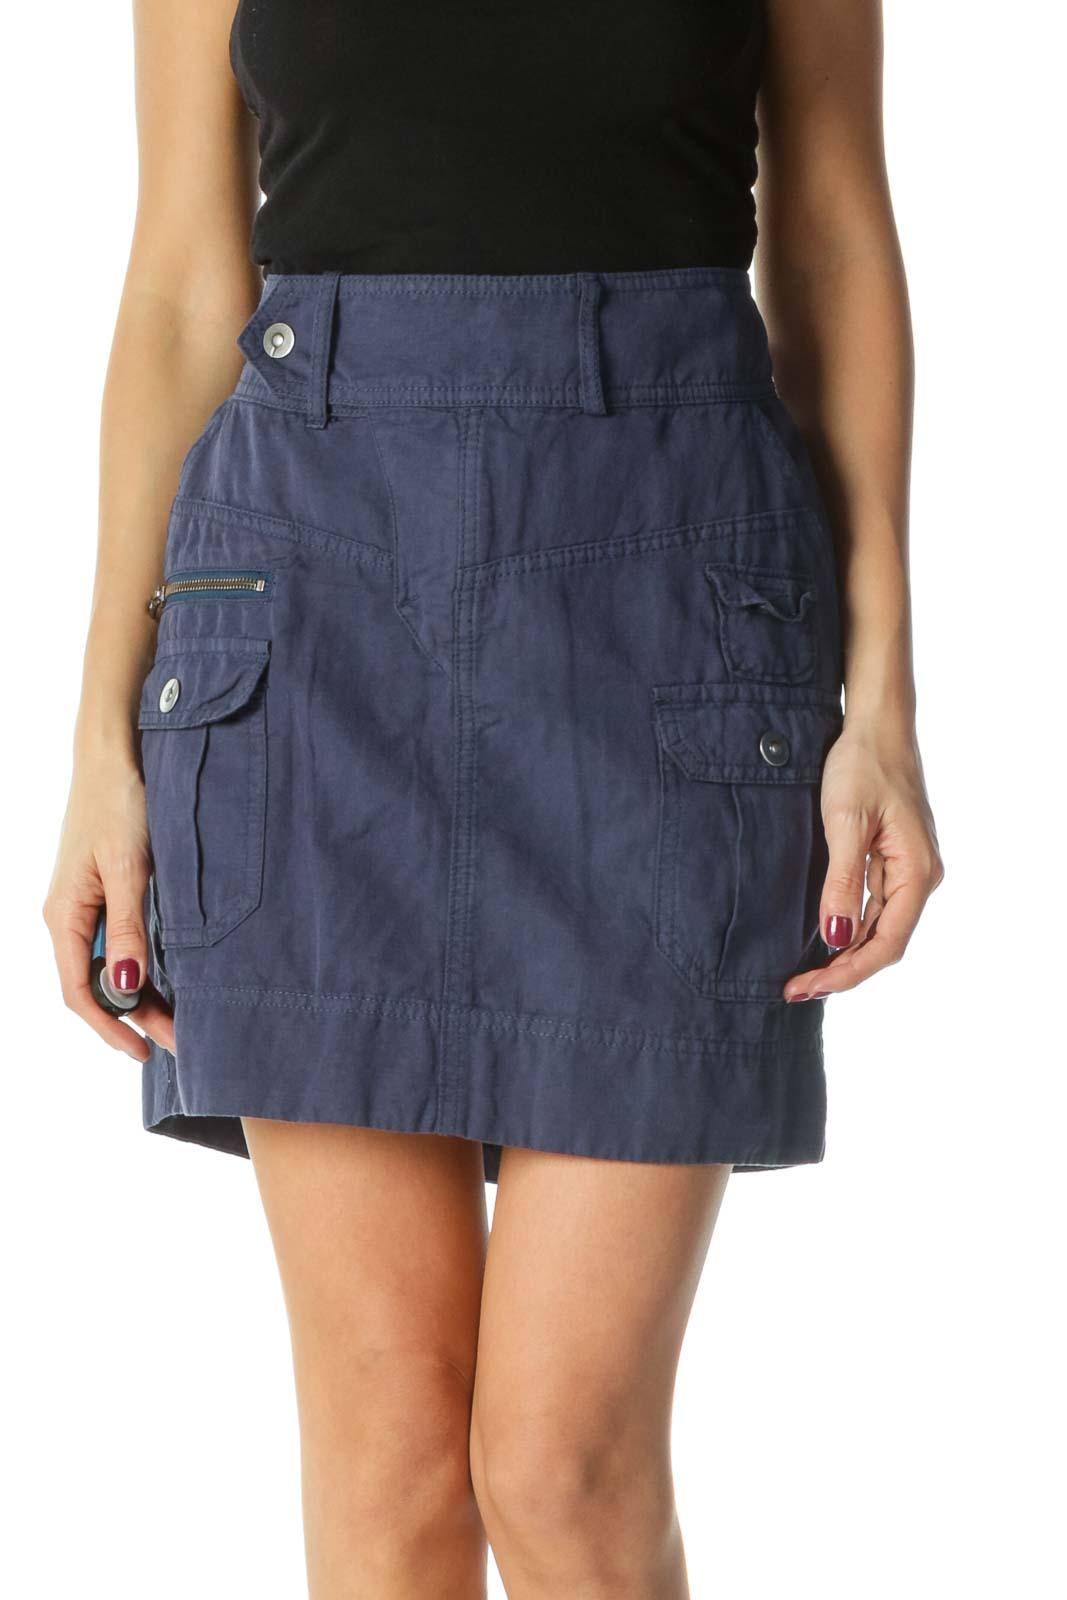 Navy Zippered Pockets and Snap Button A-Line Skirt Front